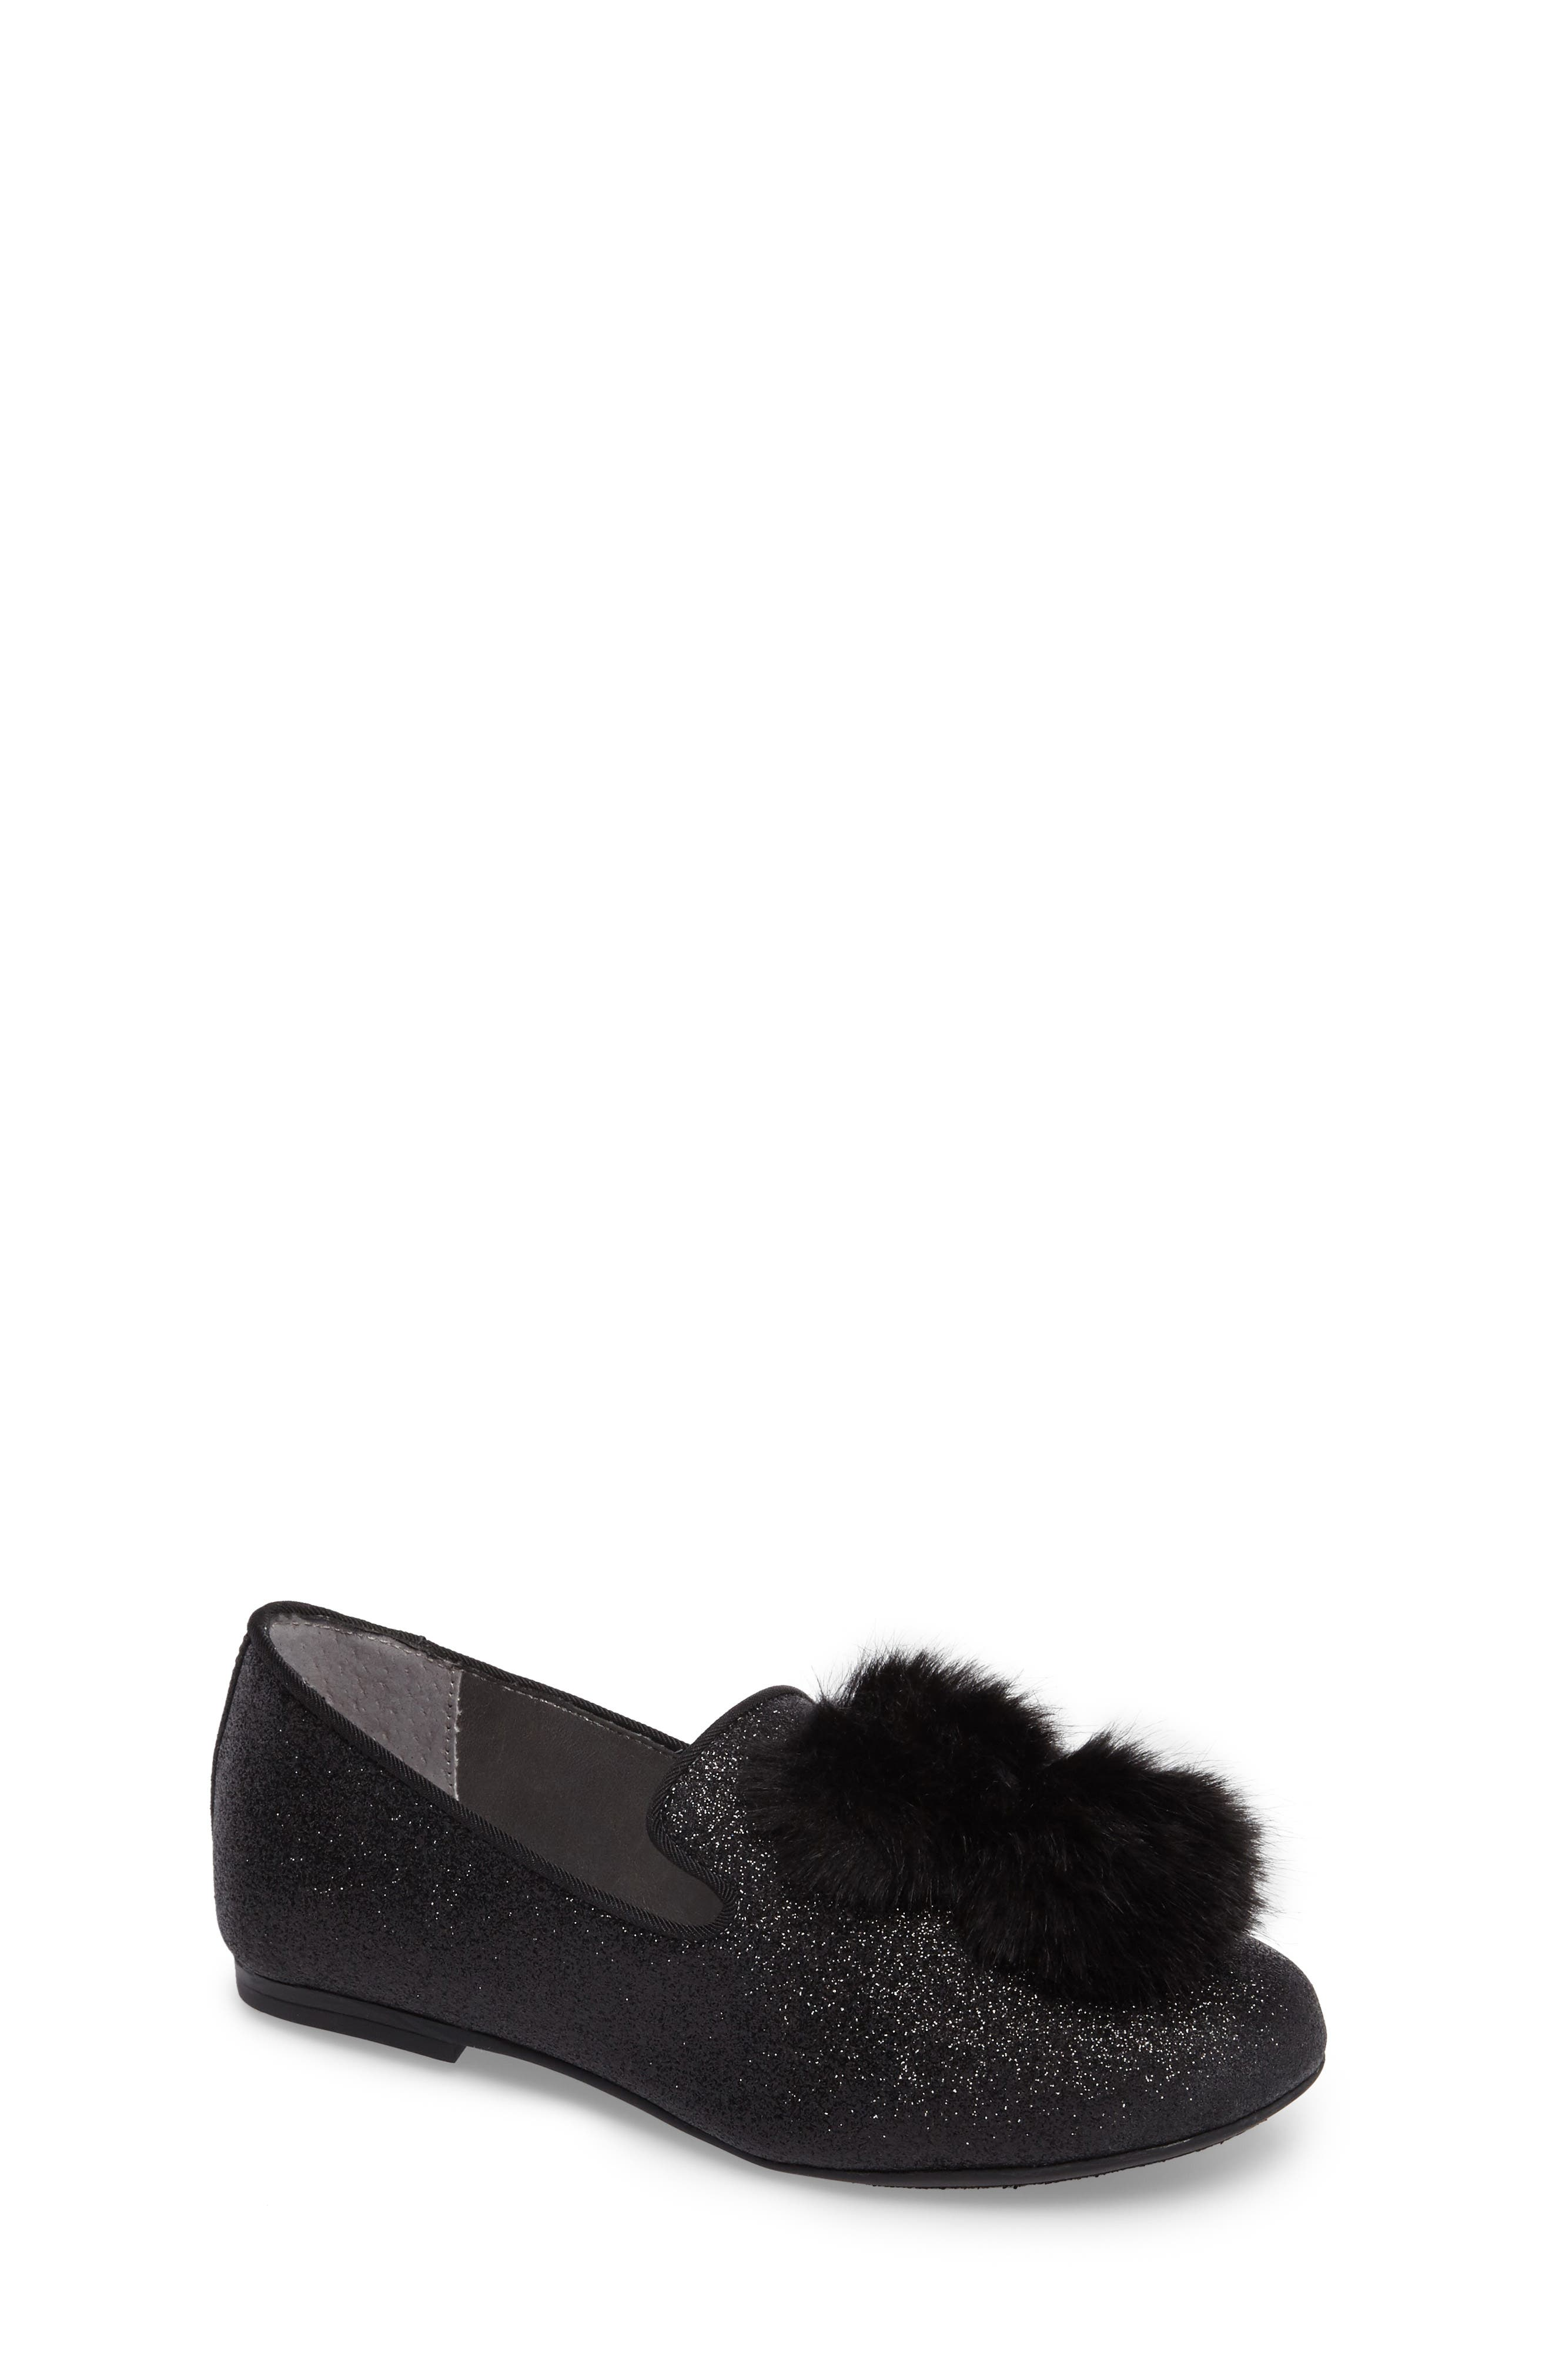 Caela Faux Fur Loafer,                         Main,                         color, Black Glitter